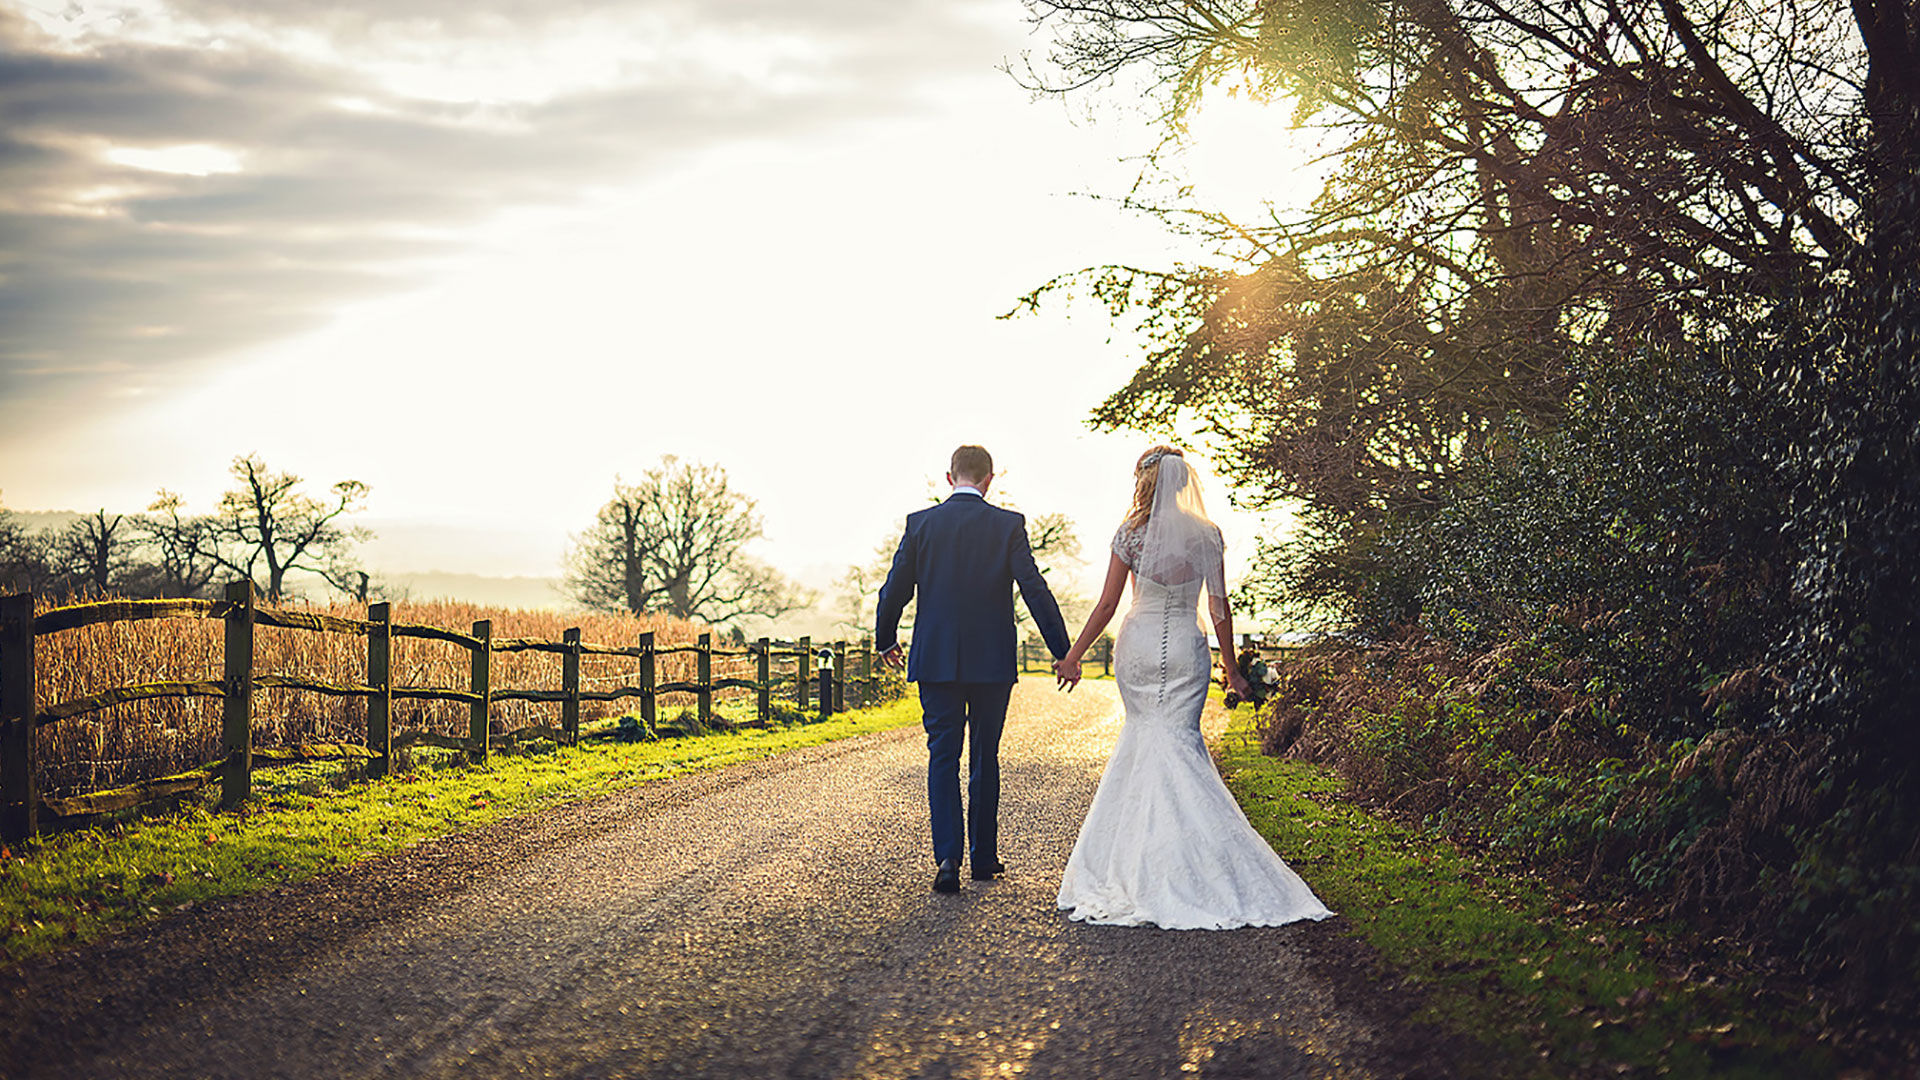 Come along to one of the finest wedding venues in Essex and explore the grounds - wedding fairs Essex